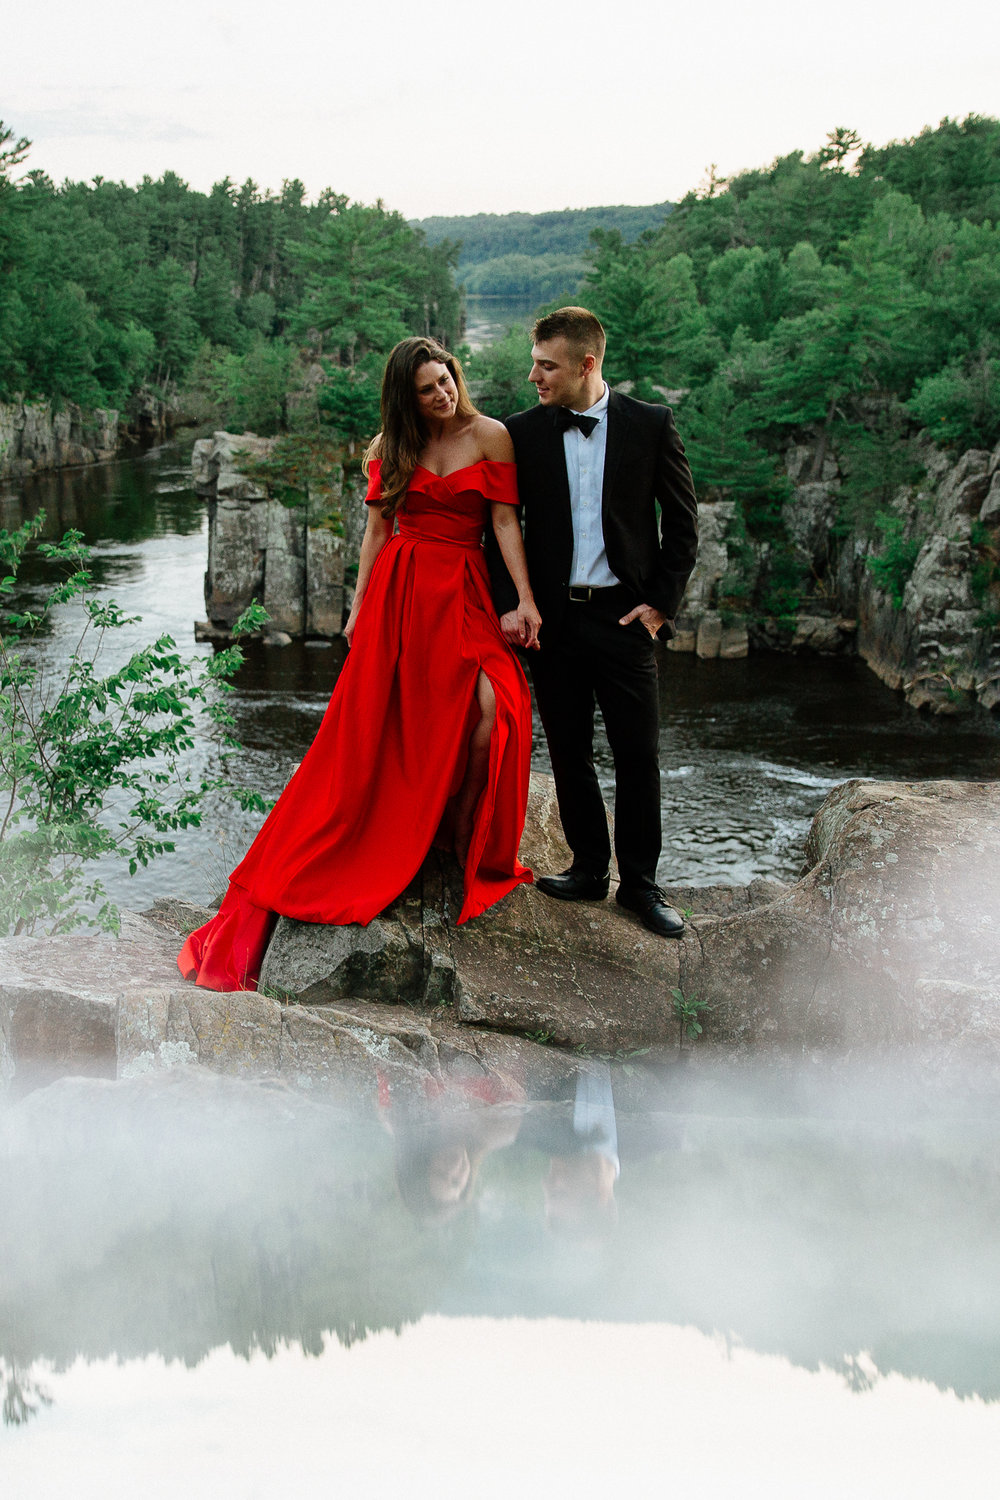 Jen_Montgomery_Photography_Allison&David_Couple_FB-234.jpg